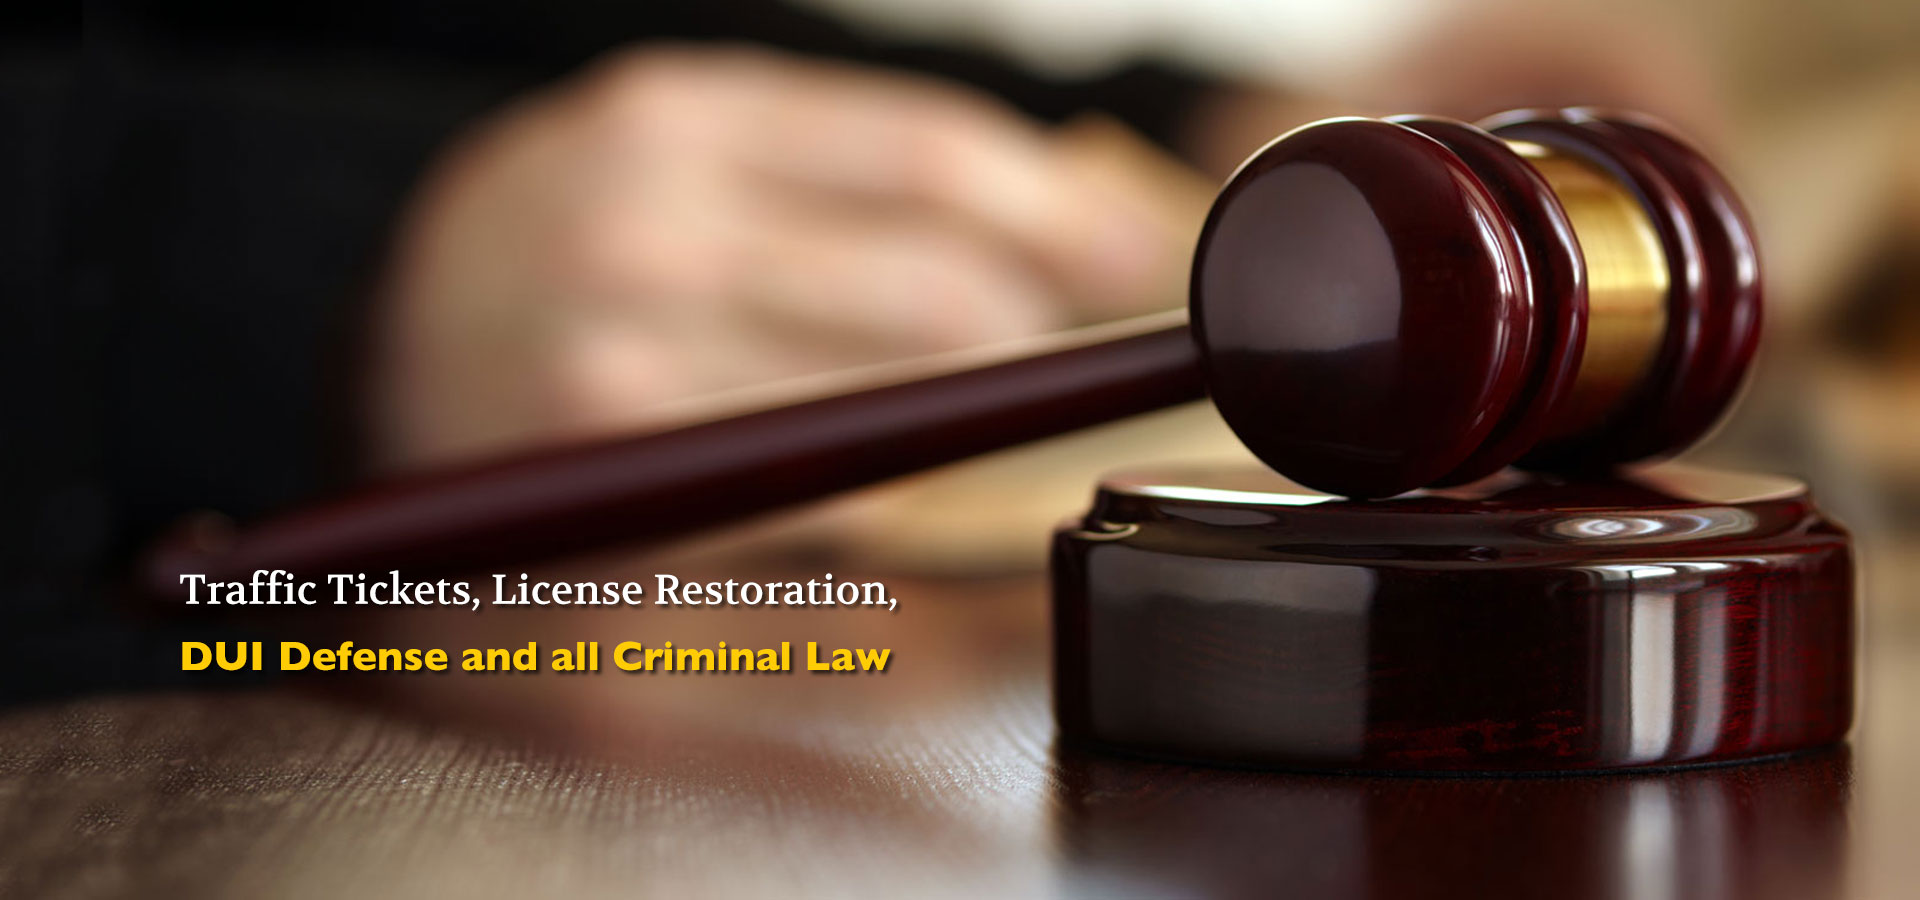 Groveland Township DUI Lawyers MI